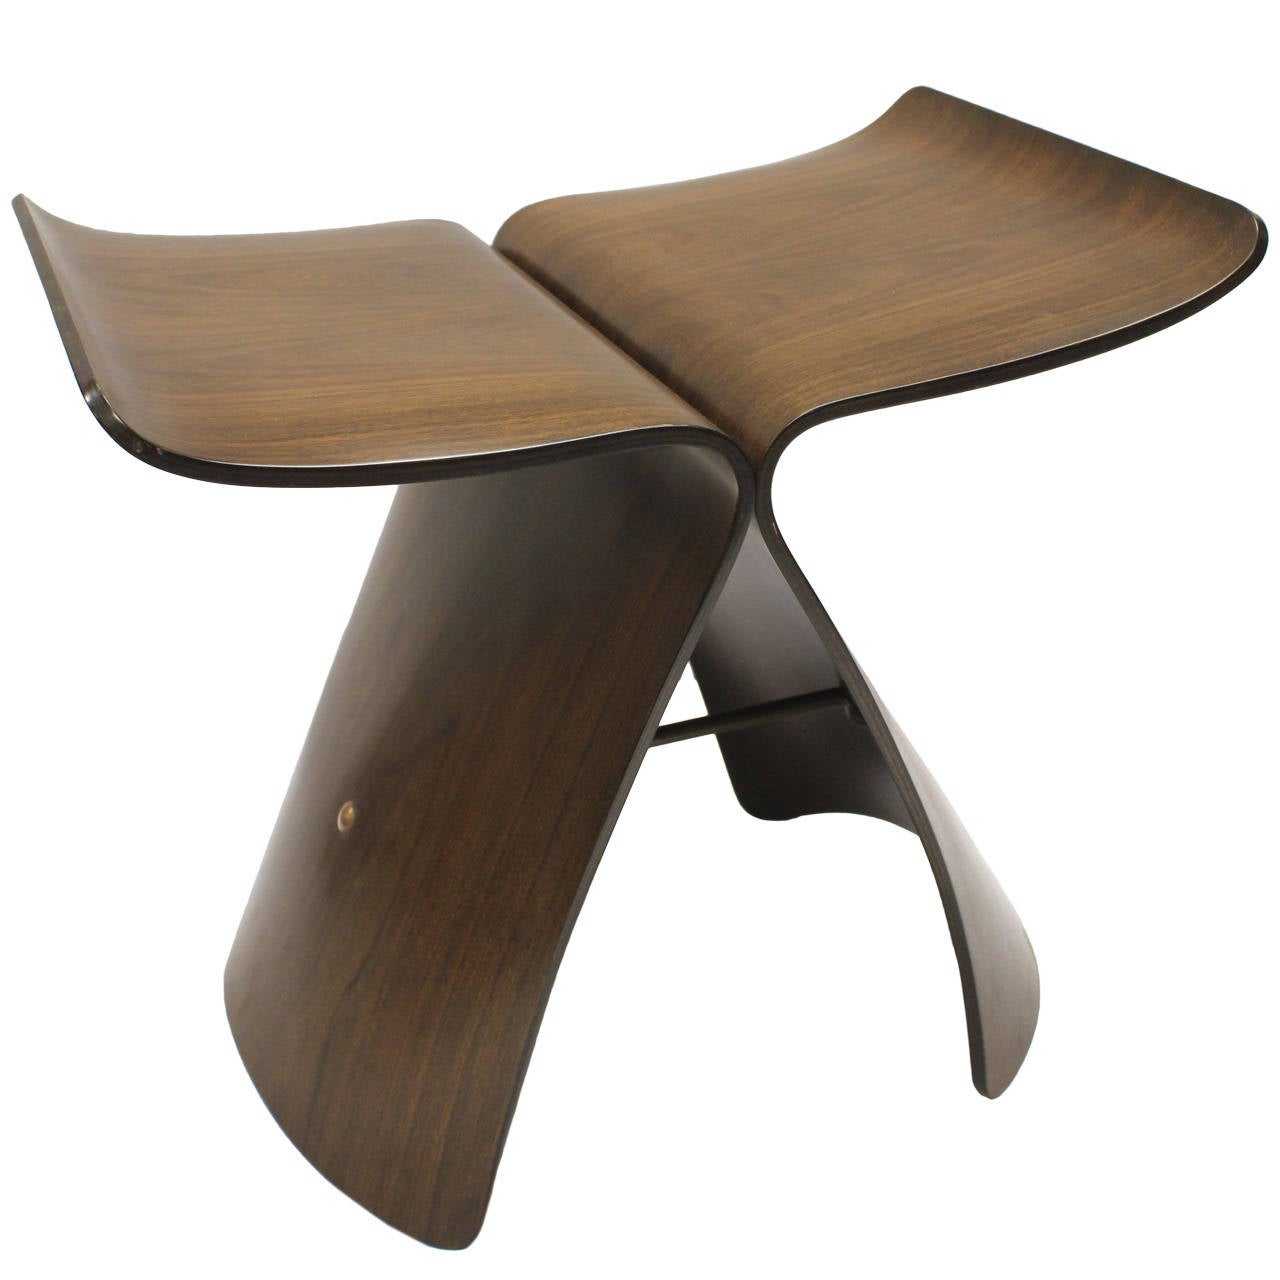 Butterfly chair sori yanagi - Butterfly Stool By Sori Yanagi For Tendo Mokko 1